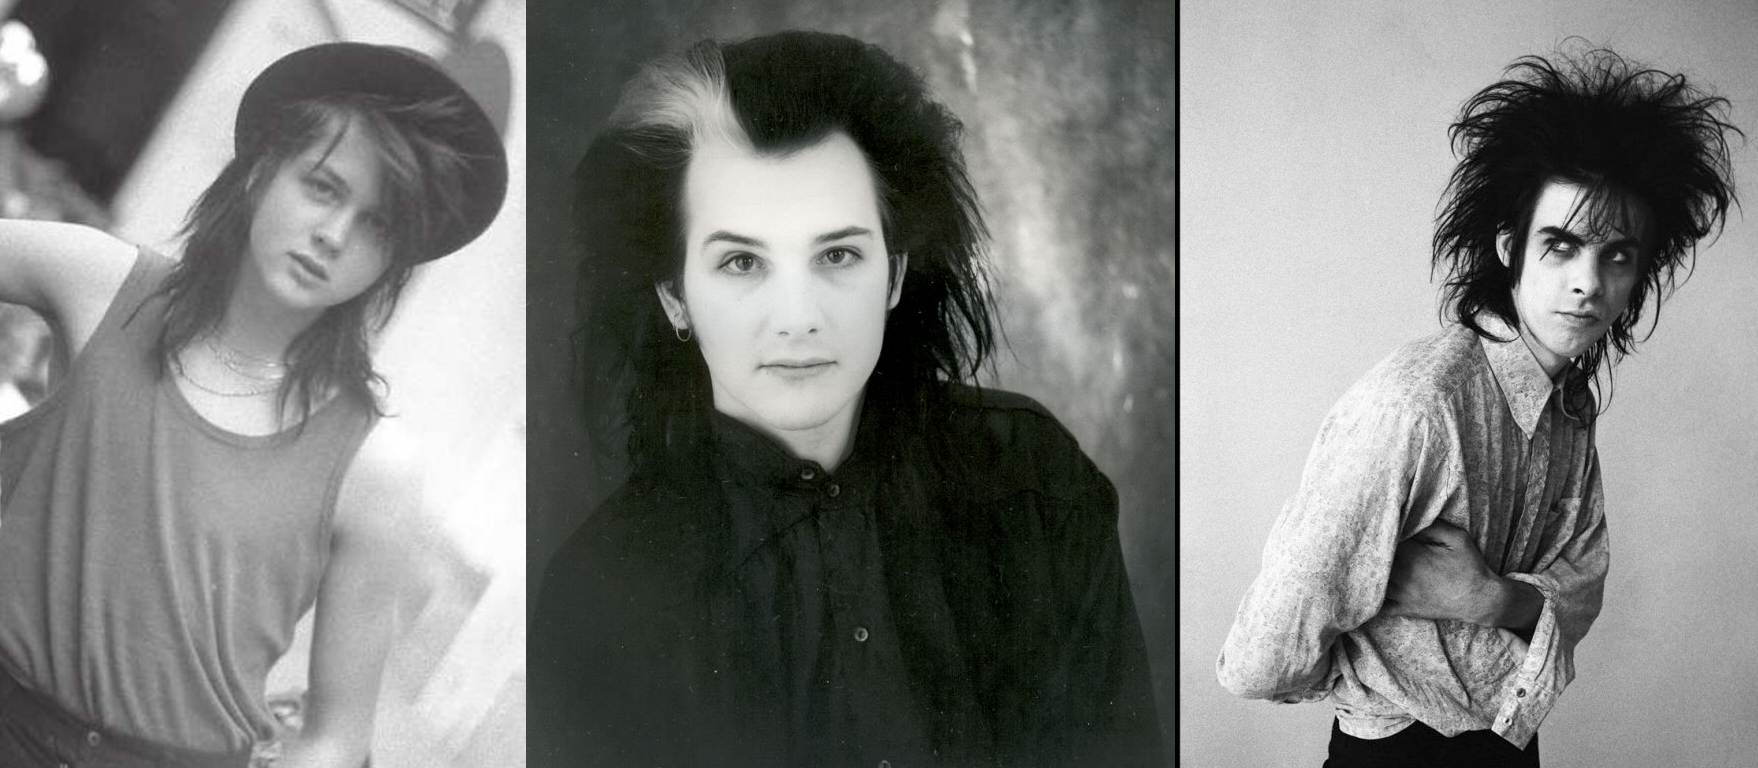 8cfc3776c1d The Beautiful Men of Goth and Post-Punk - Post-Punk.com